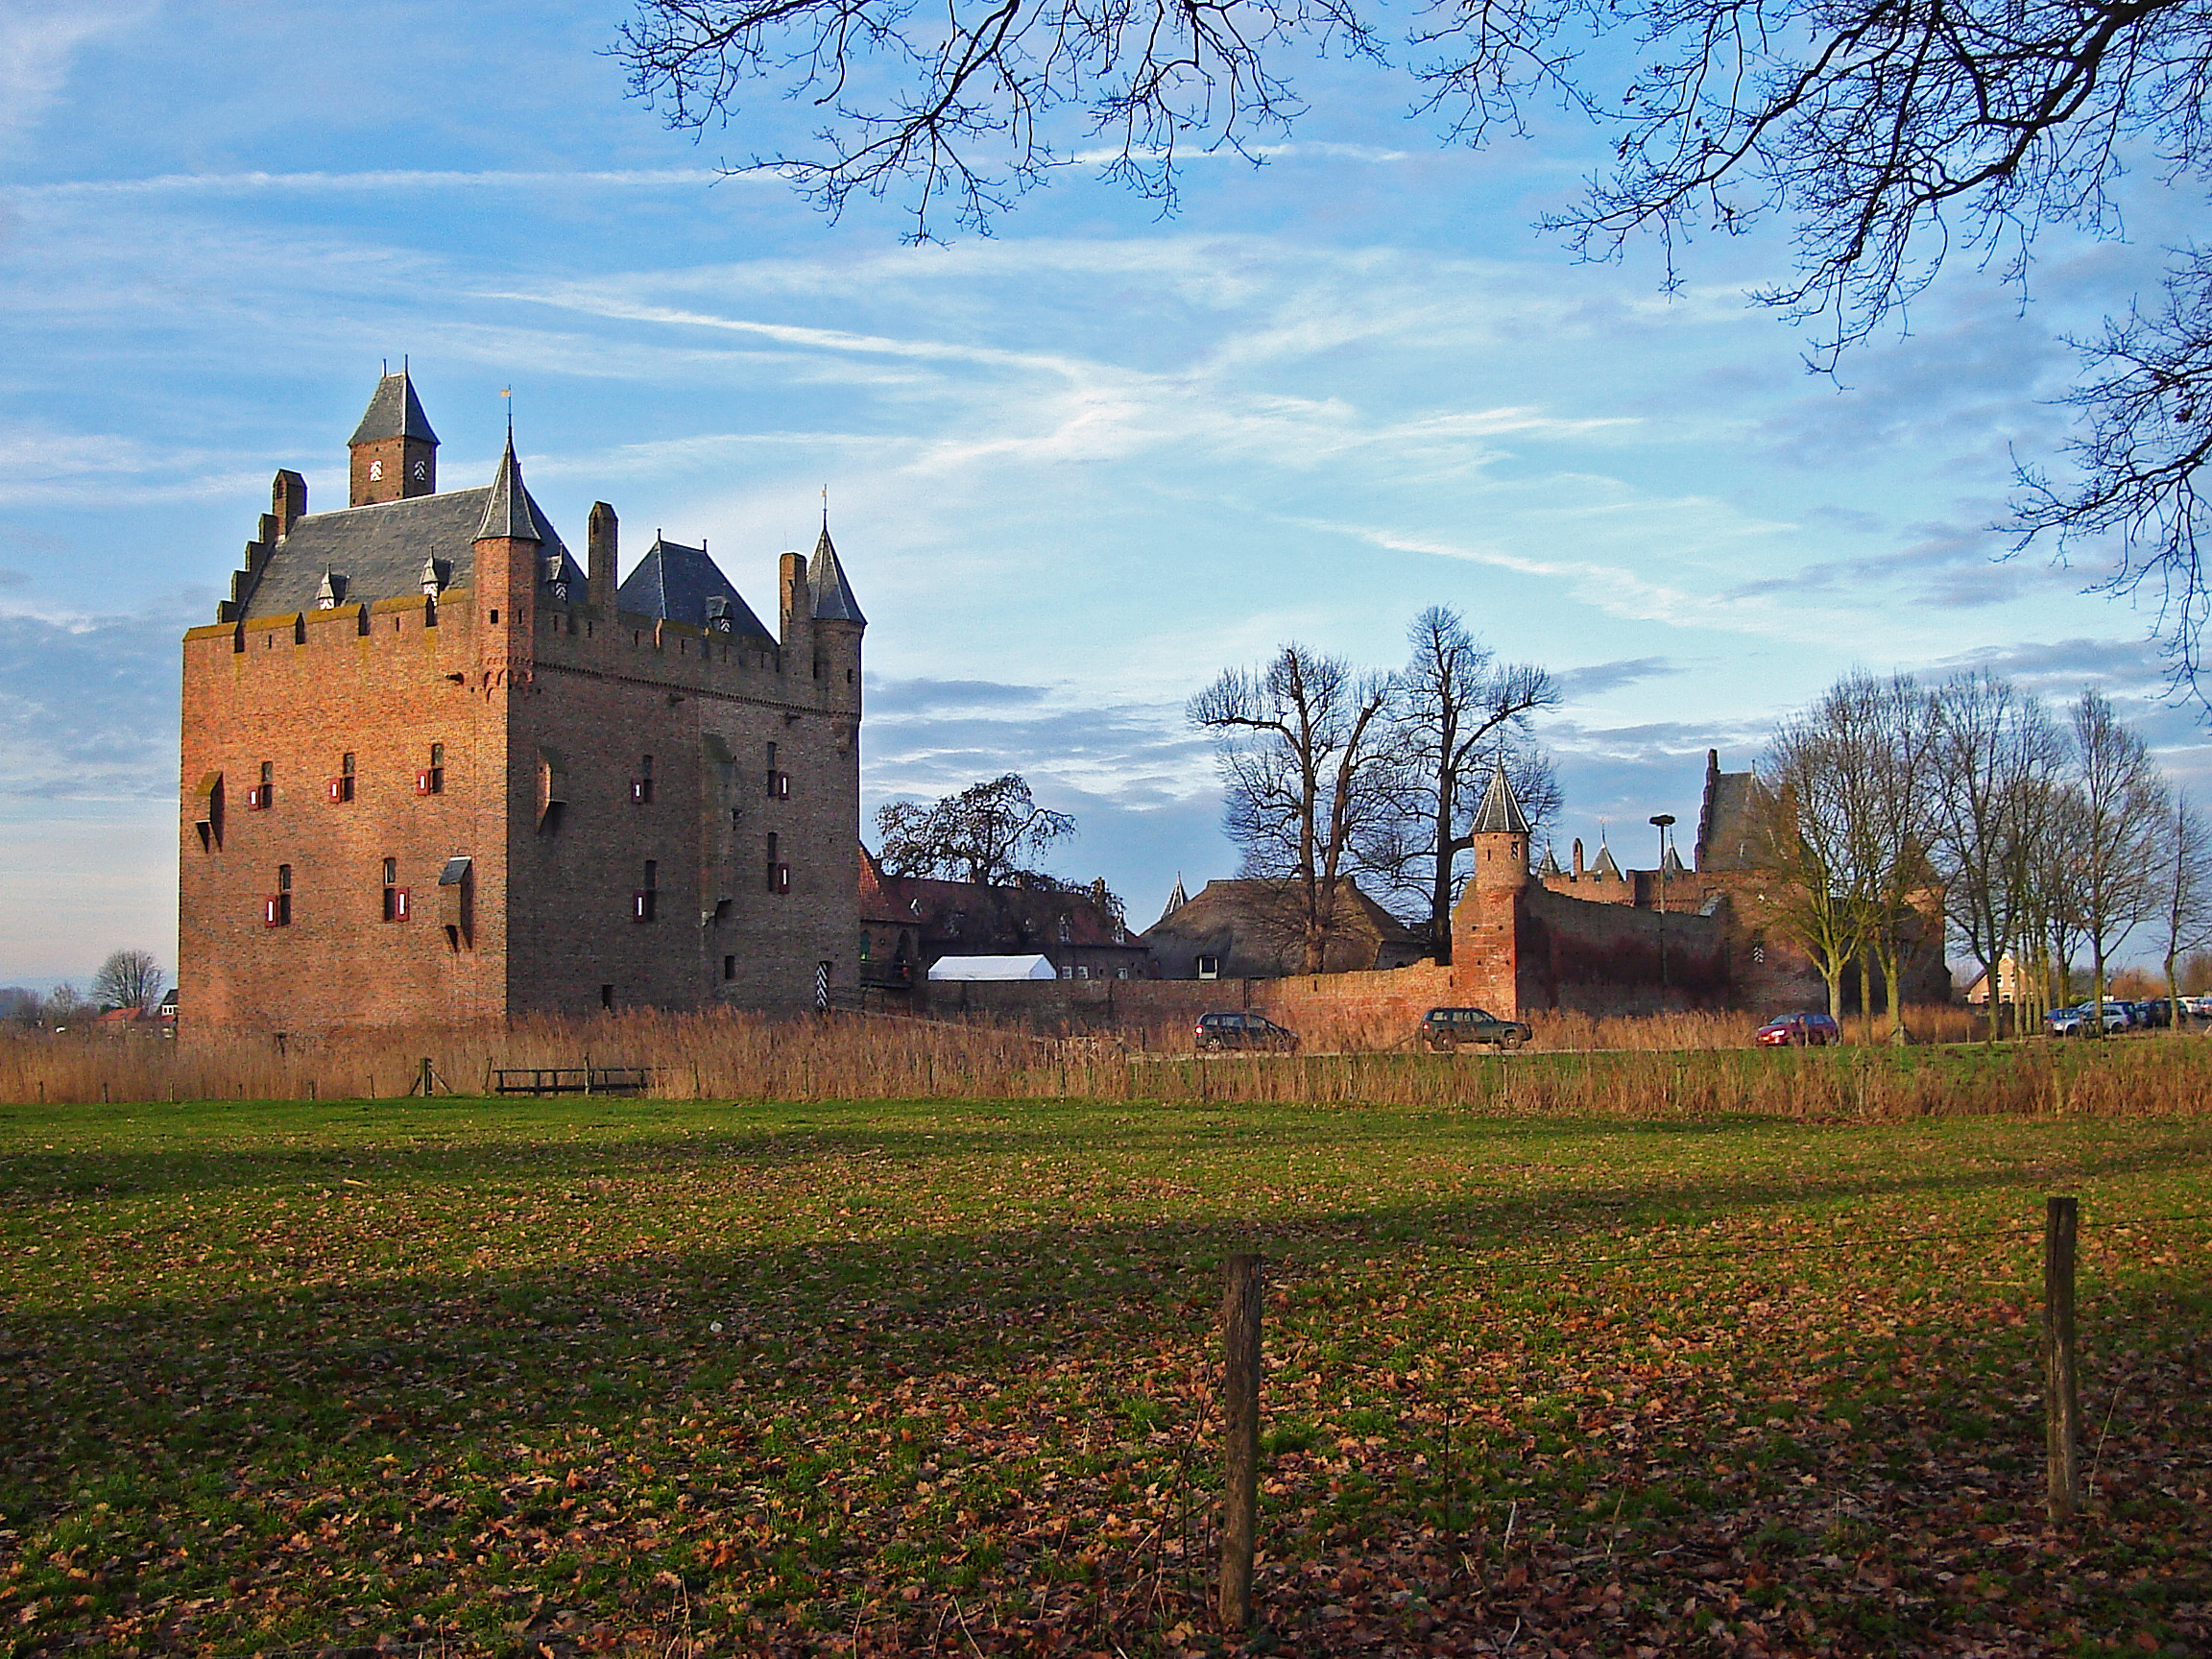 File Doornenburg, Kasteel Doornenburg overzicht RM8942 jpg   Wikimedia Commons